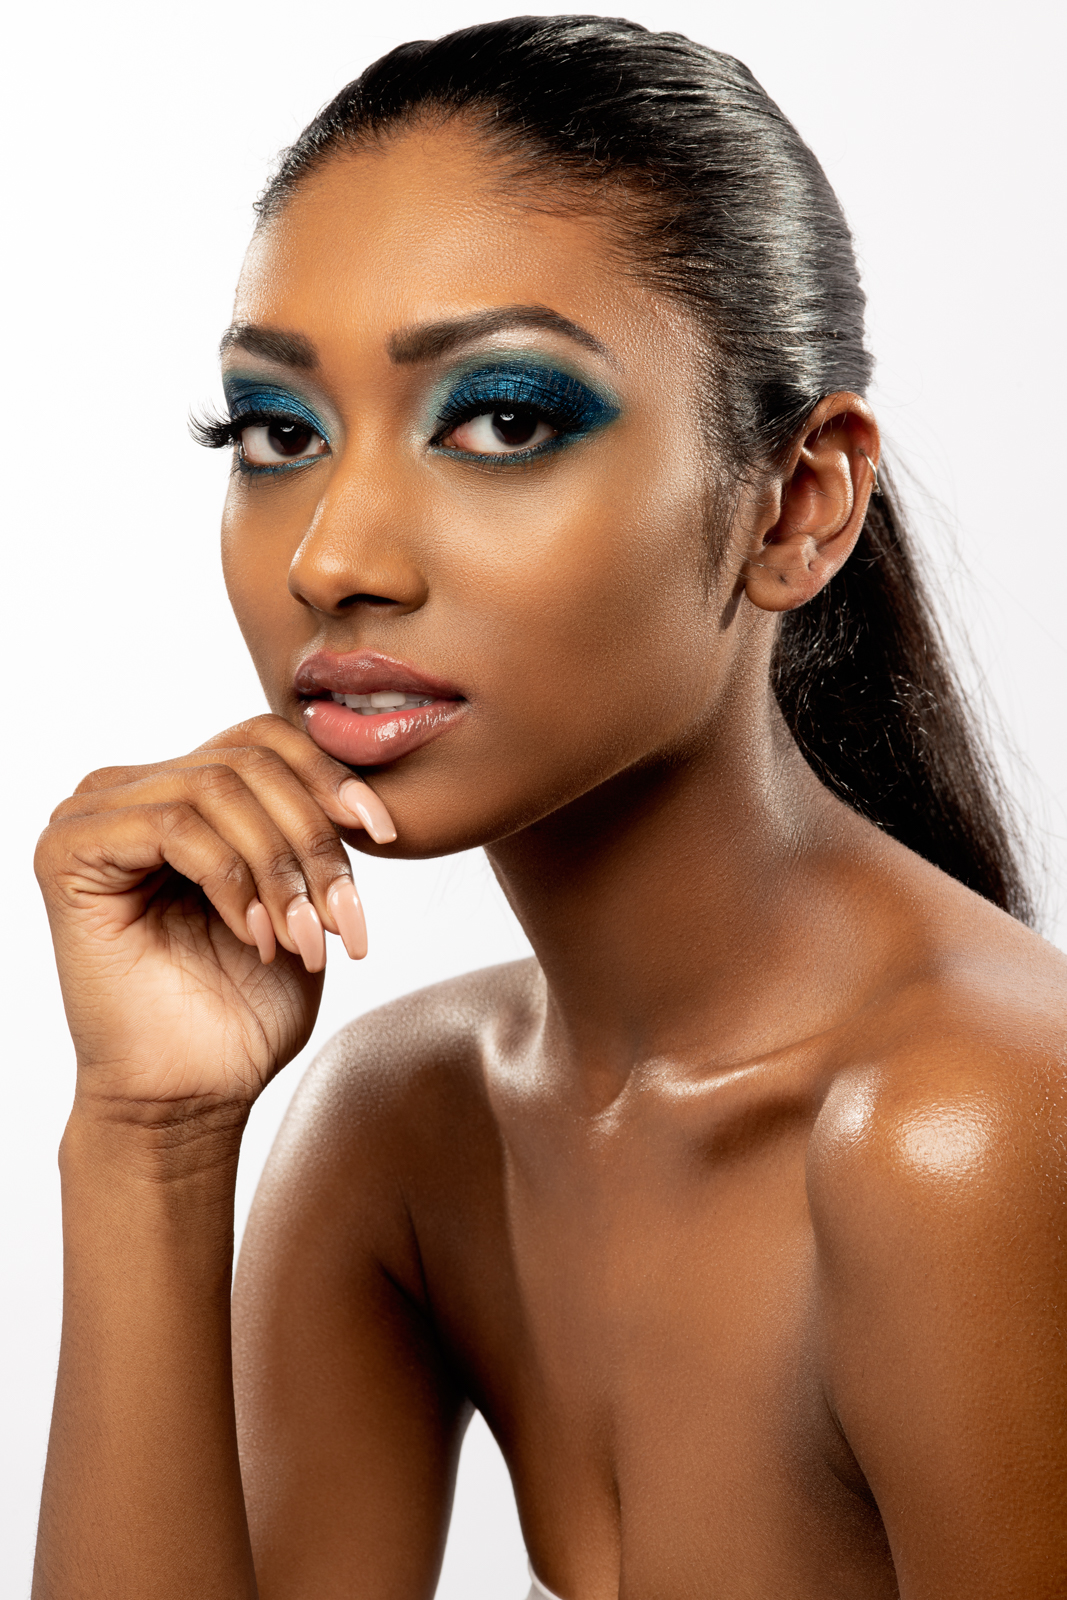 Model |   Ashley    Makeup Artist |   Jordan